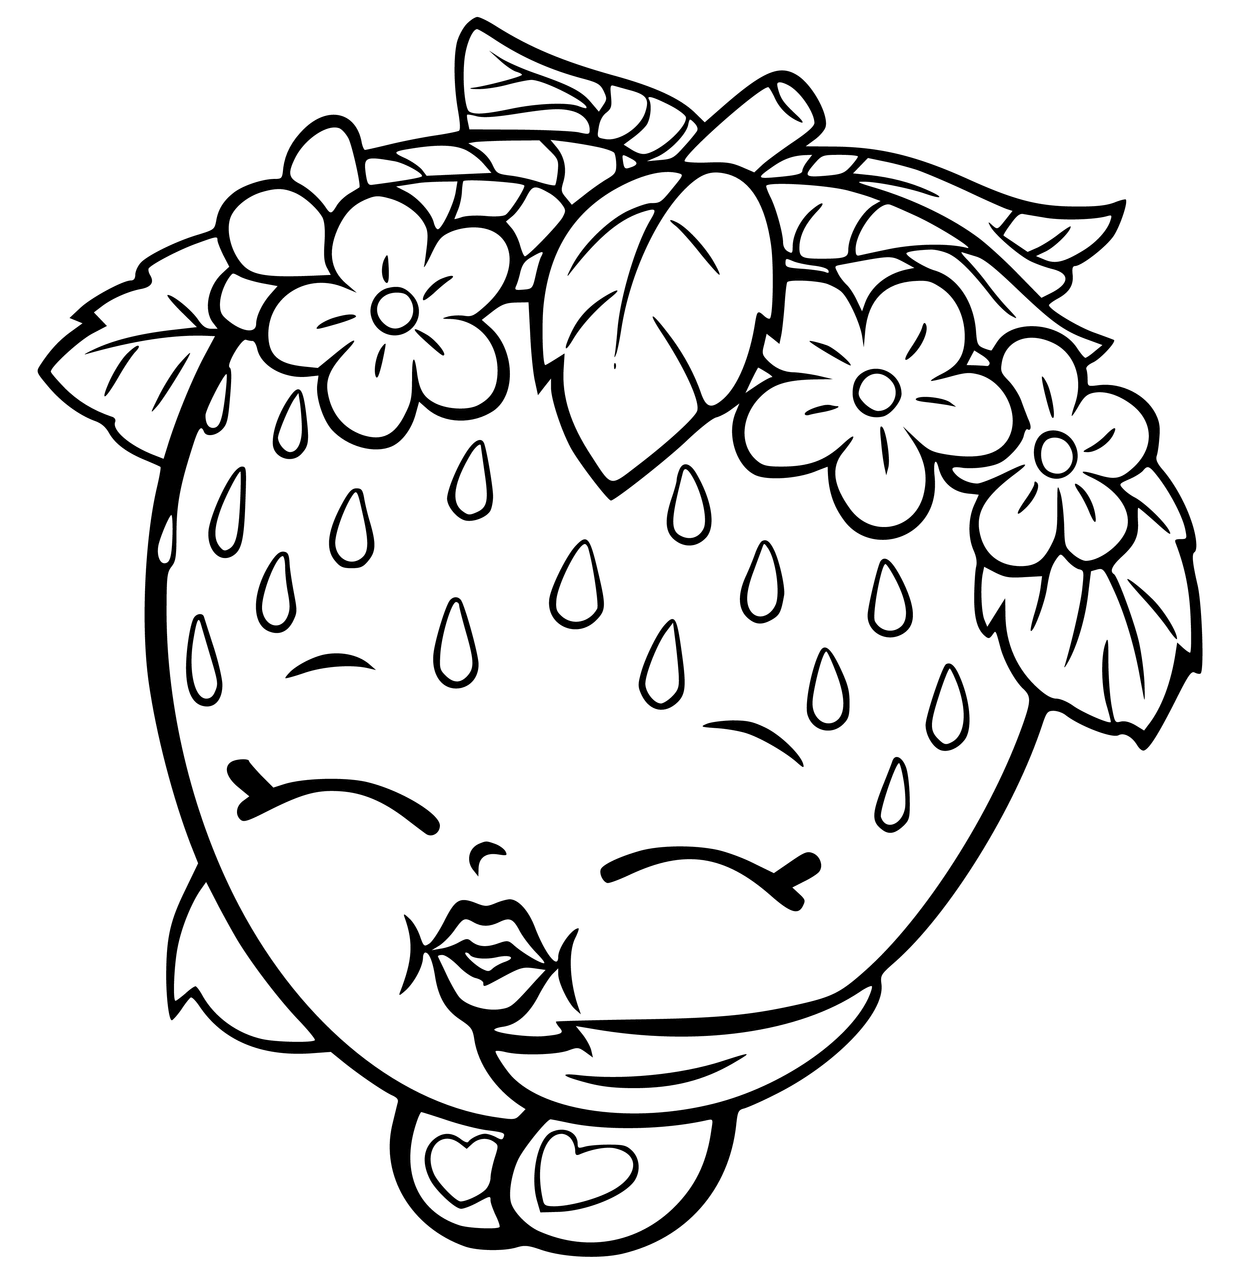 1240x1274 Shopkins Coloring Pages Coloring Pages For Kids